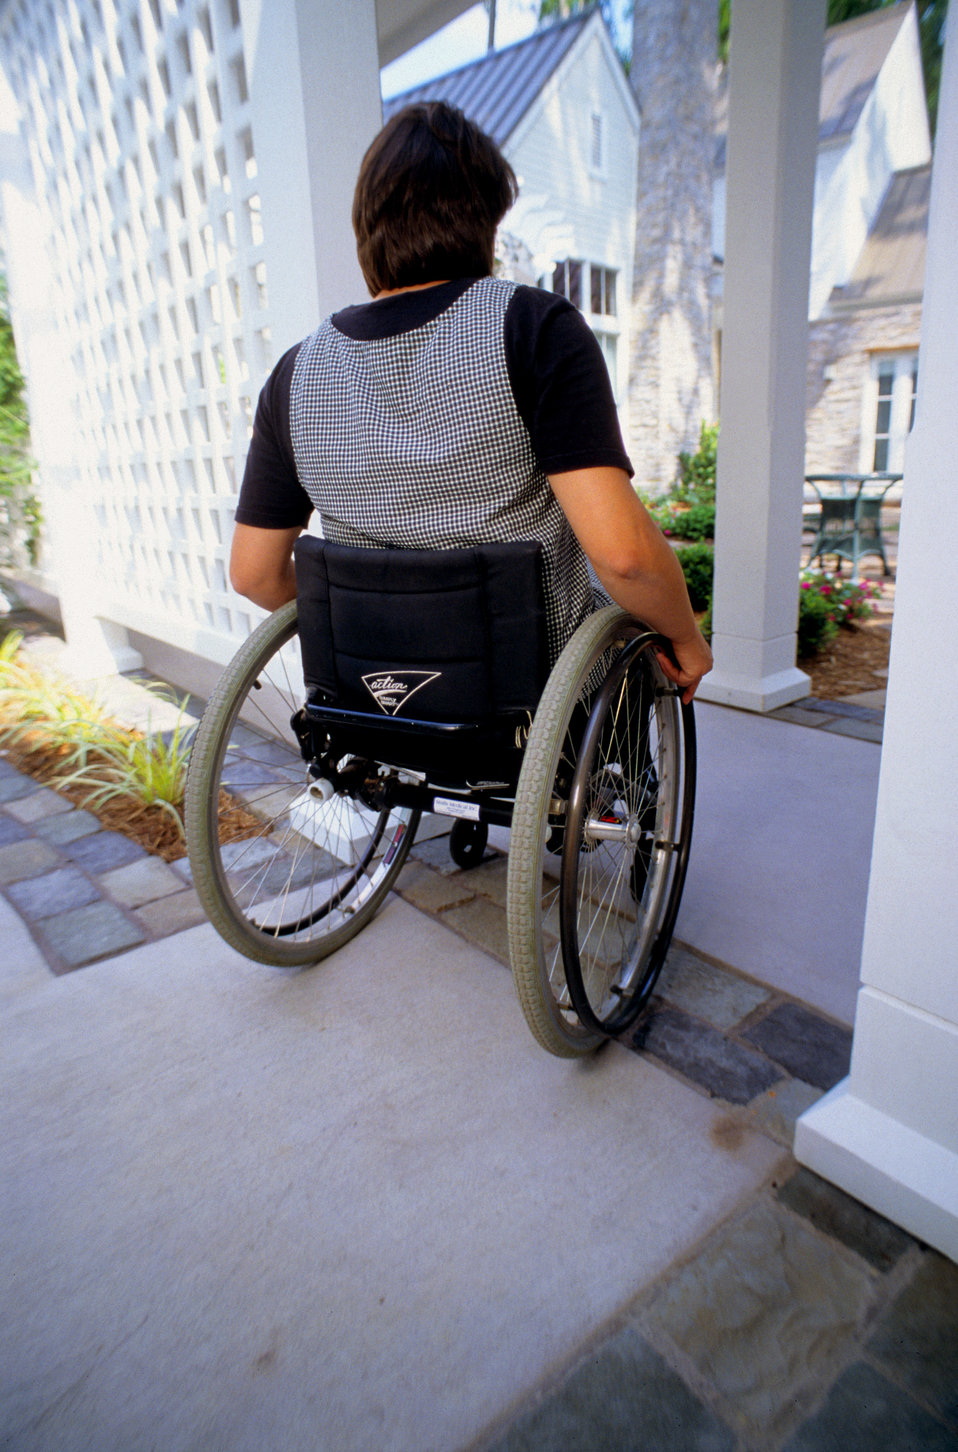 This is one of two images, (PHIL# 9165, 9166), which depicted an adult mobility-challenged woman, who was in her wheelchair as she was rolli